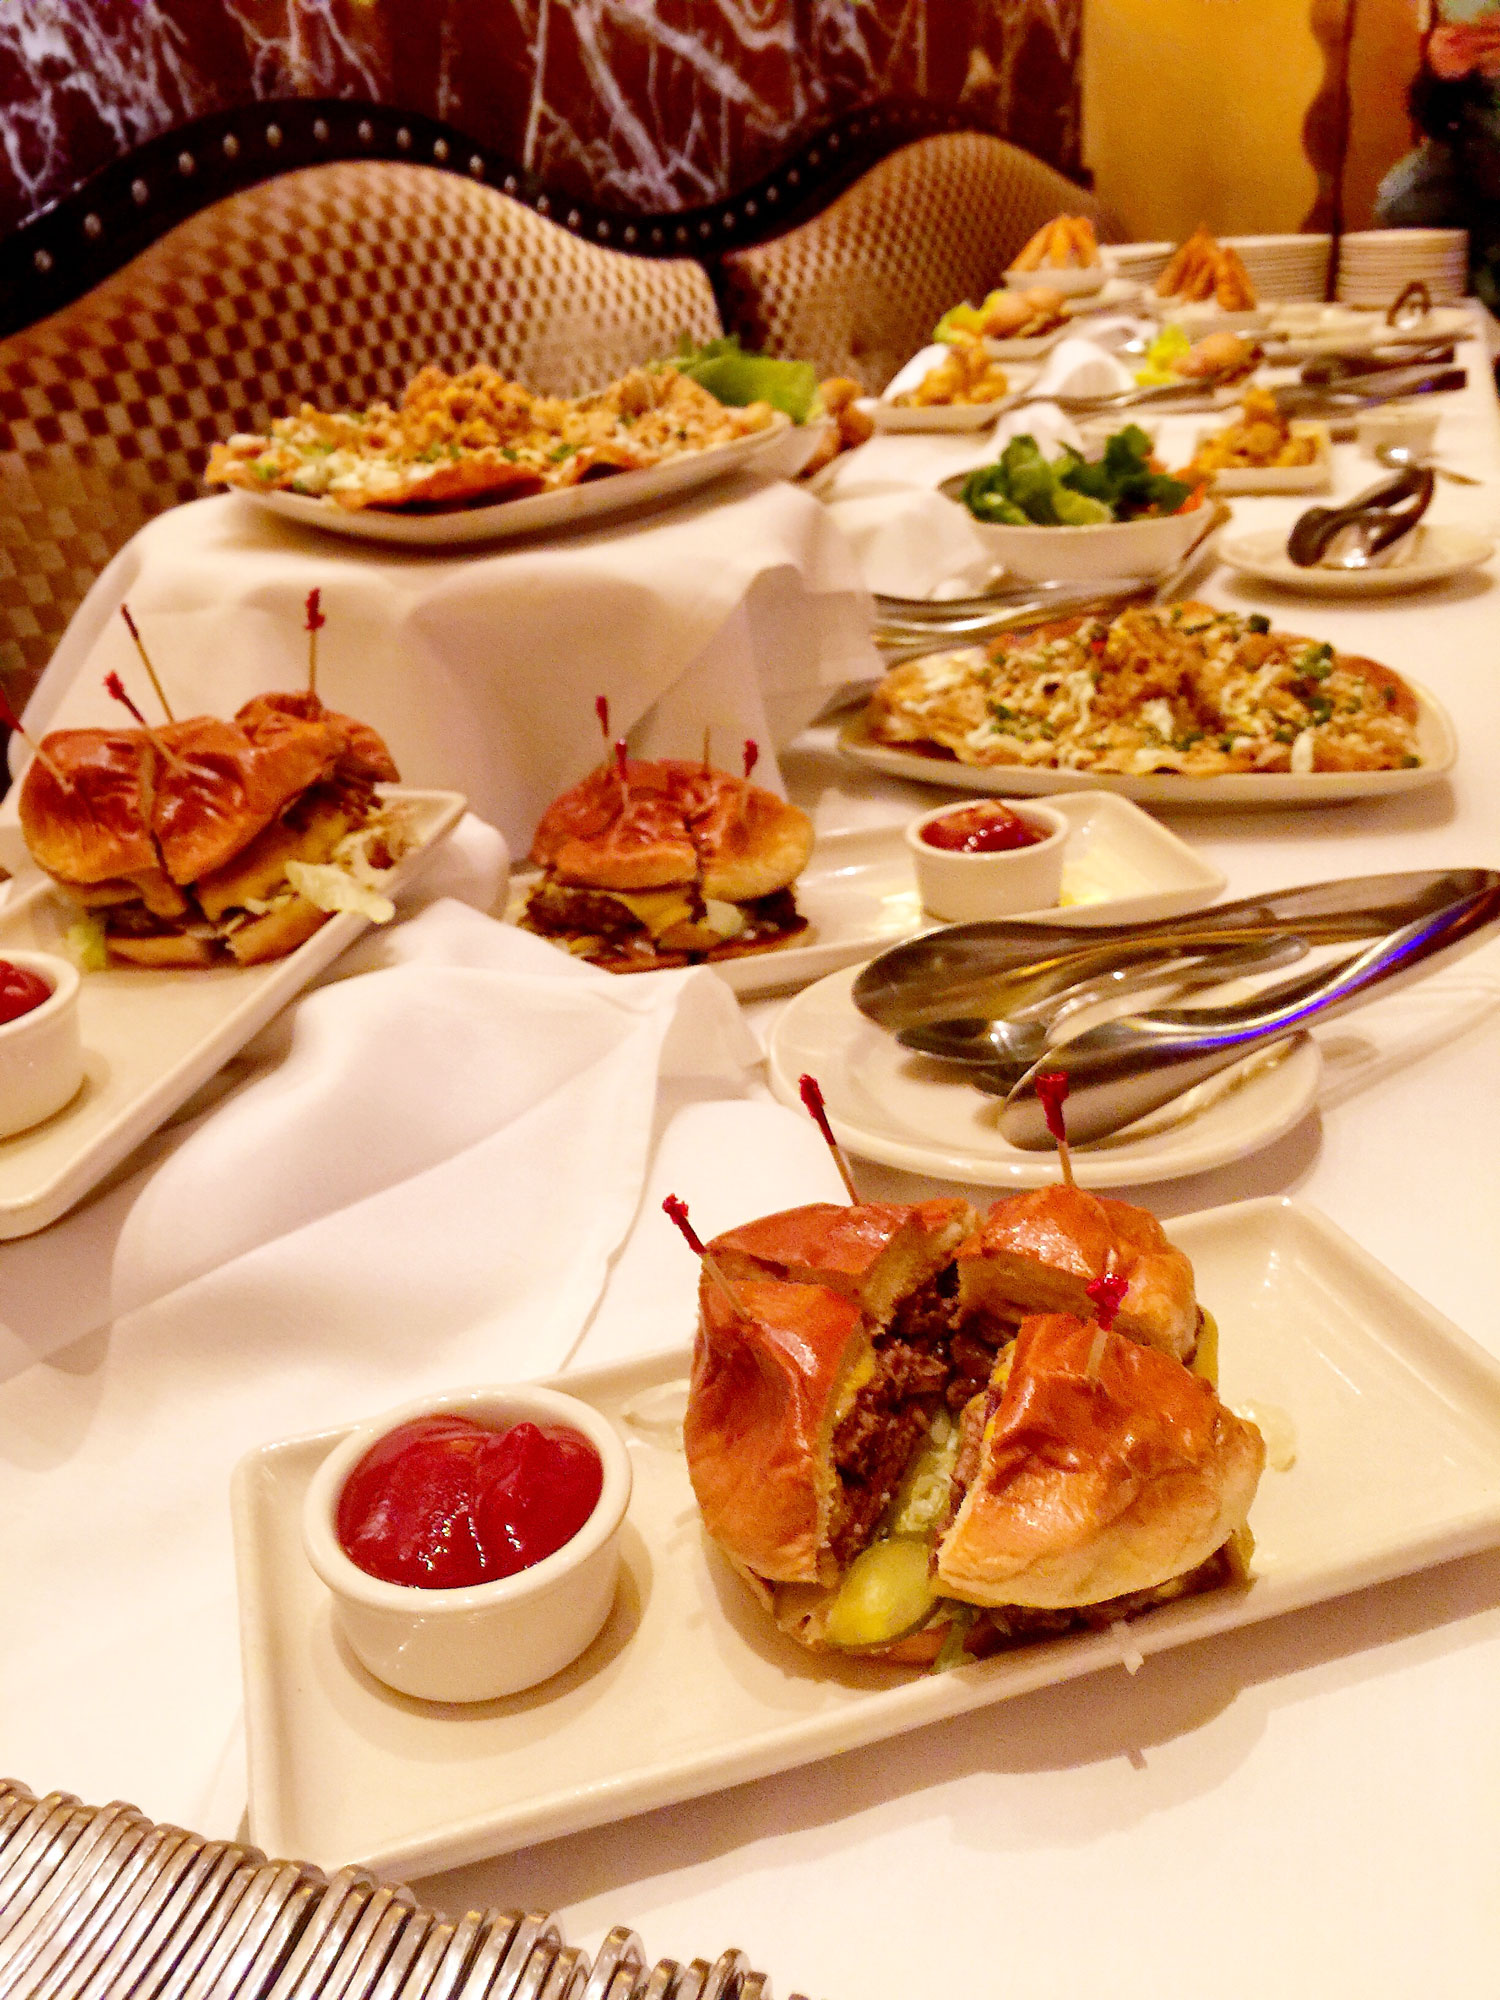 The Options On Hy Hour Menu At Grand Lux Cafe Are Endless Photo By